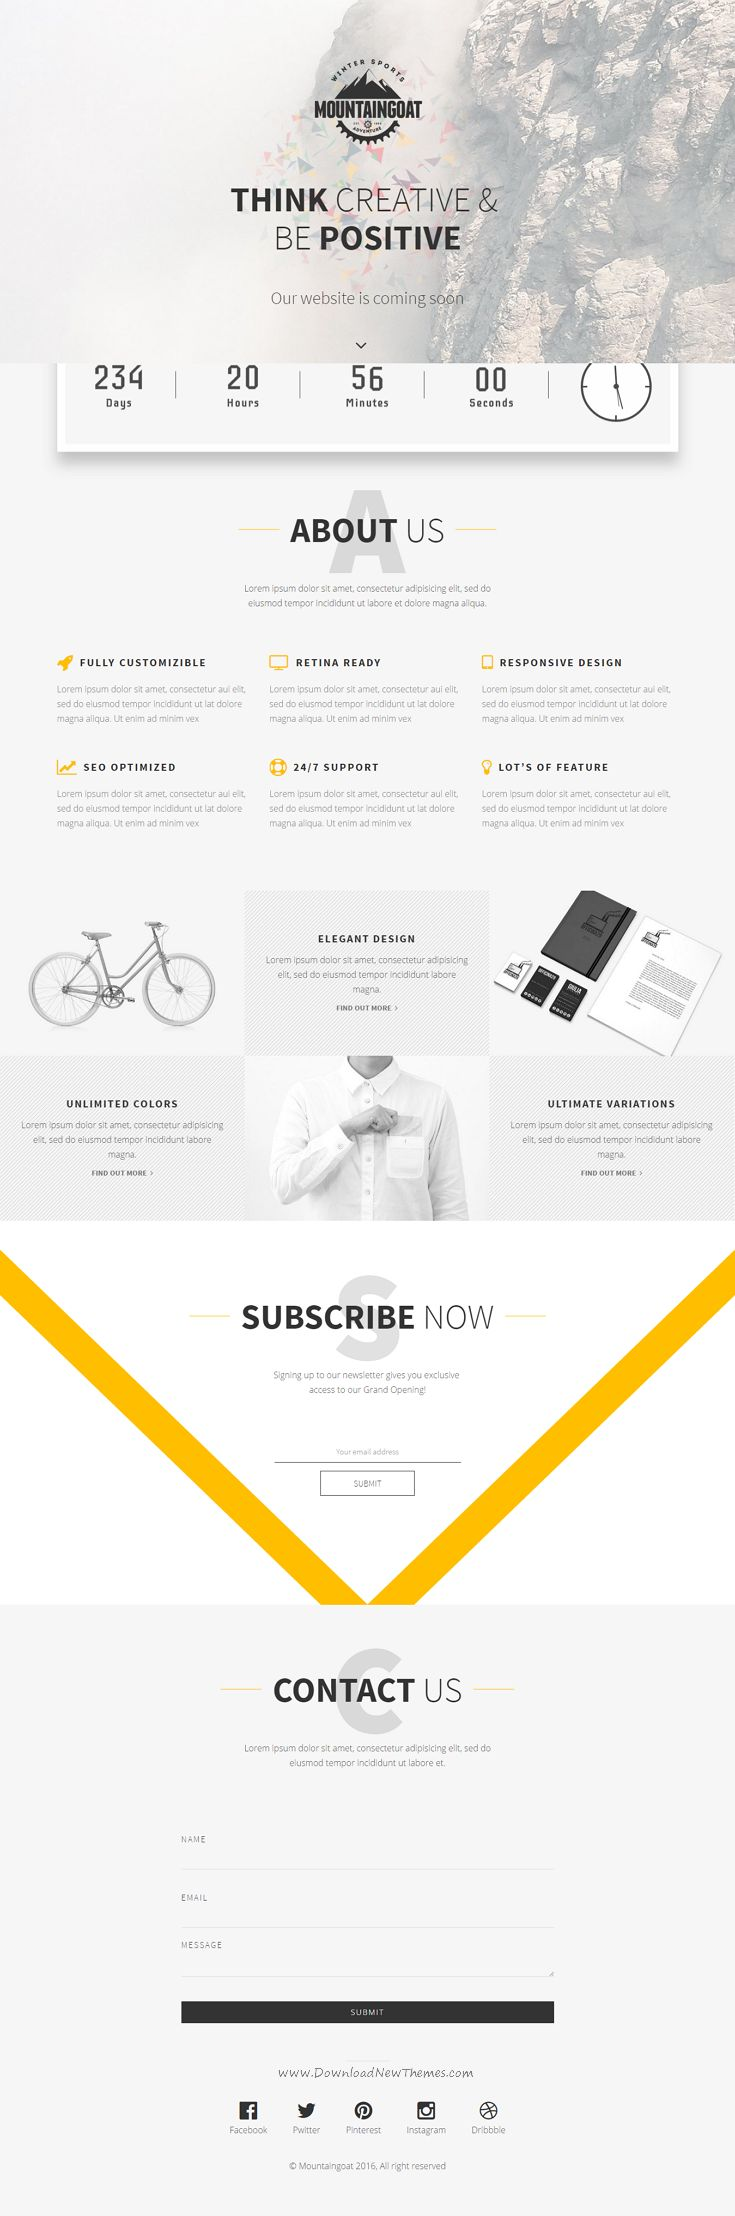 Mountaingoat is a Responsive, High Quality Coming Soon / Under Construction HTML5 template built with Bootstrap 3.3. It is clean and very simple to use in your website to notify your audience your launching date and also it helps to be in touch with your site visitors.